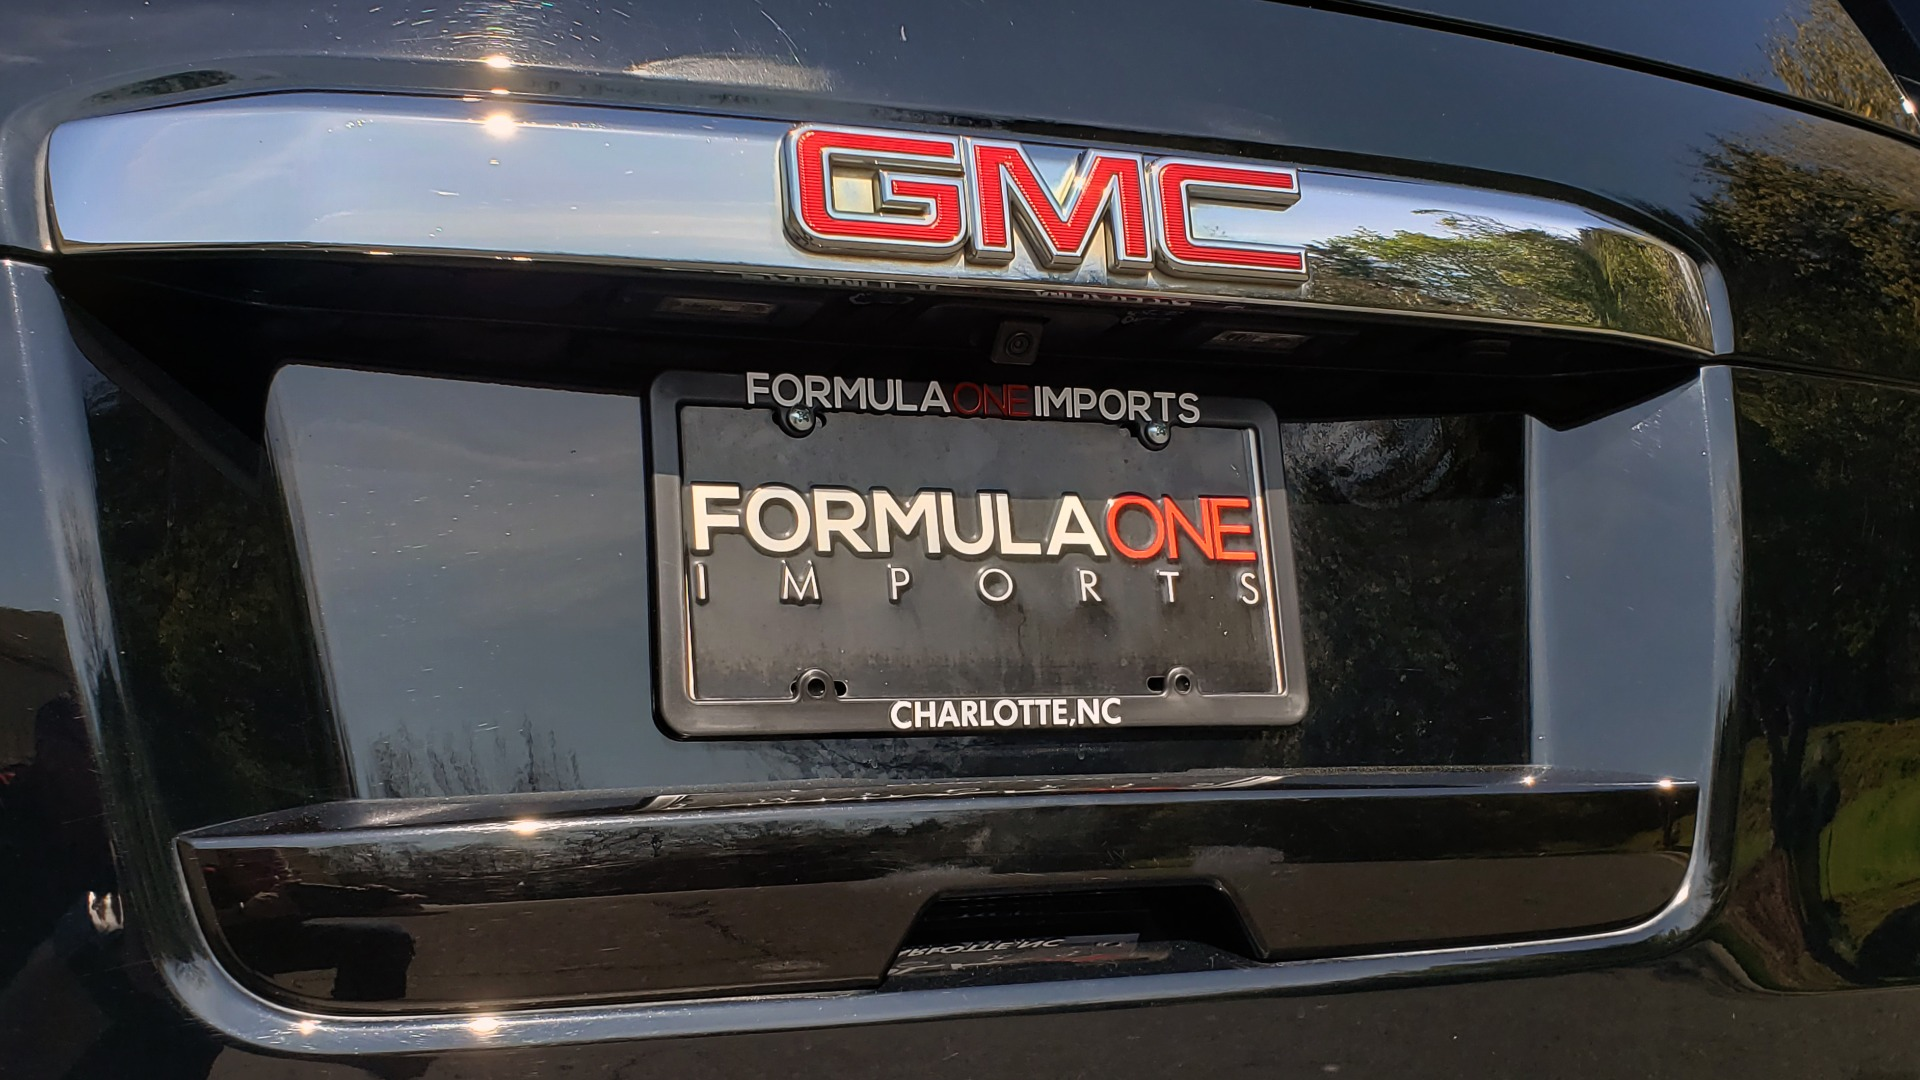 Used 2016 GMC YUKON DENALI 4WD / OPEN ROAD / NAV / ENTERTAINMENT / 3-ROW for sale Sold at Formula Imports in Charlotte NC 28227 27